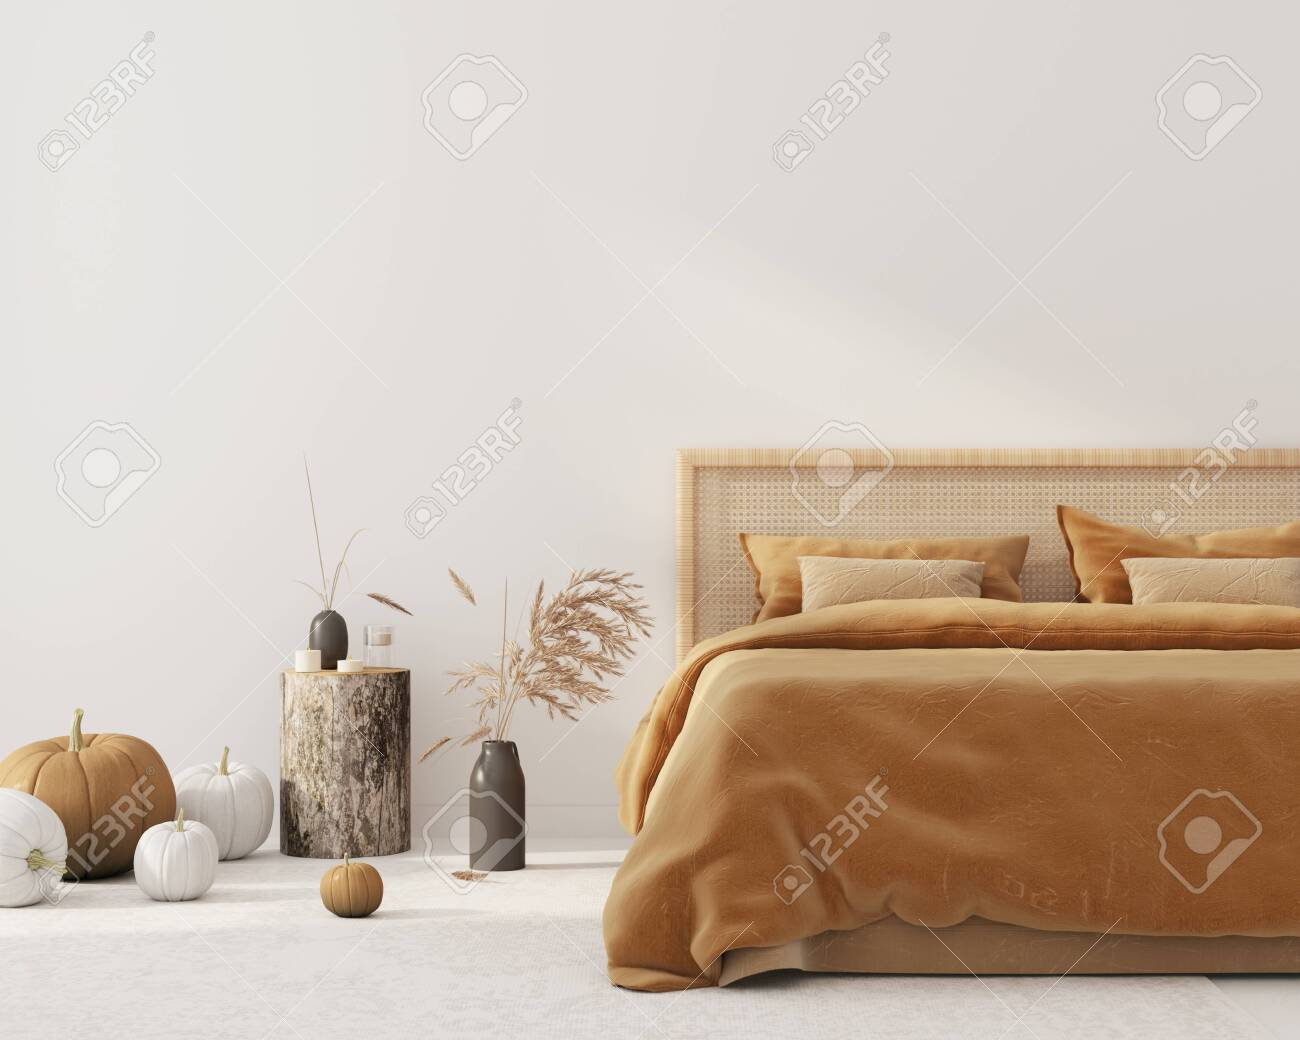 Bedroom Interior With King Size Bed With Autumn Colored Bedding Stock Photo Picture And Royalty Free Image Image 131855808